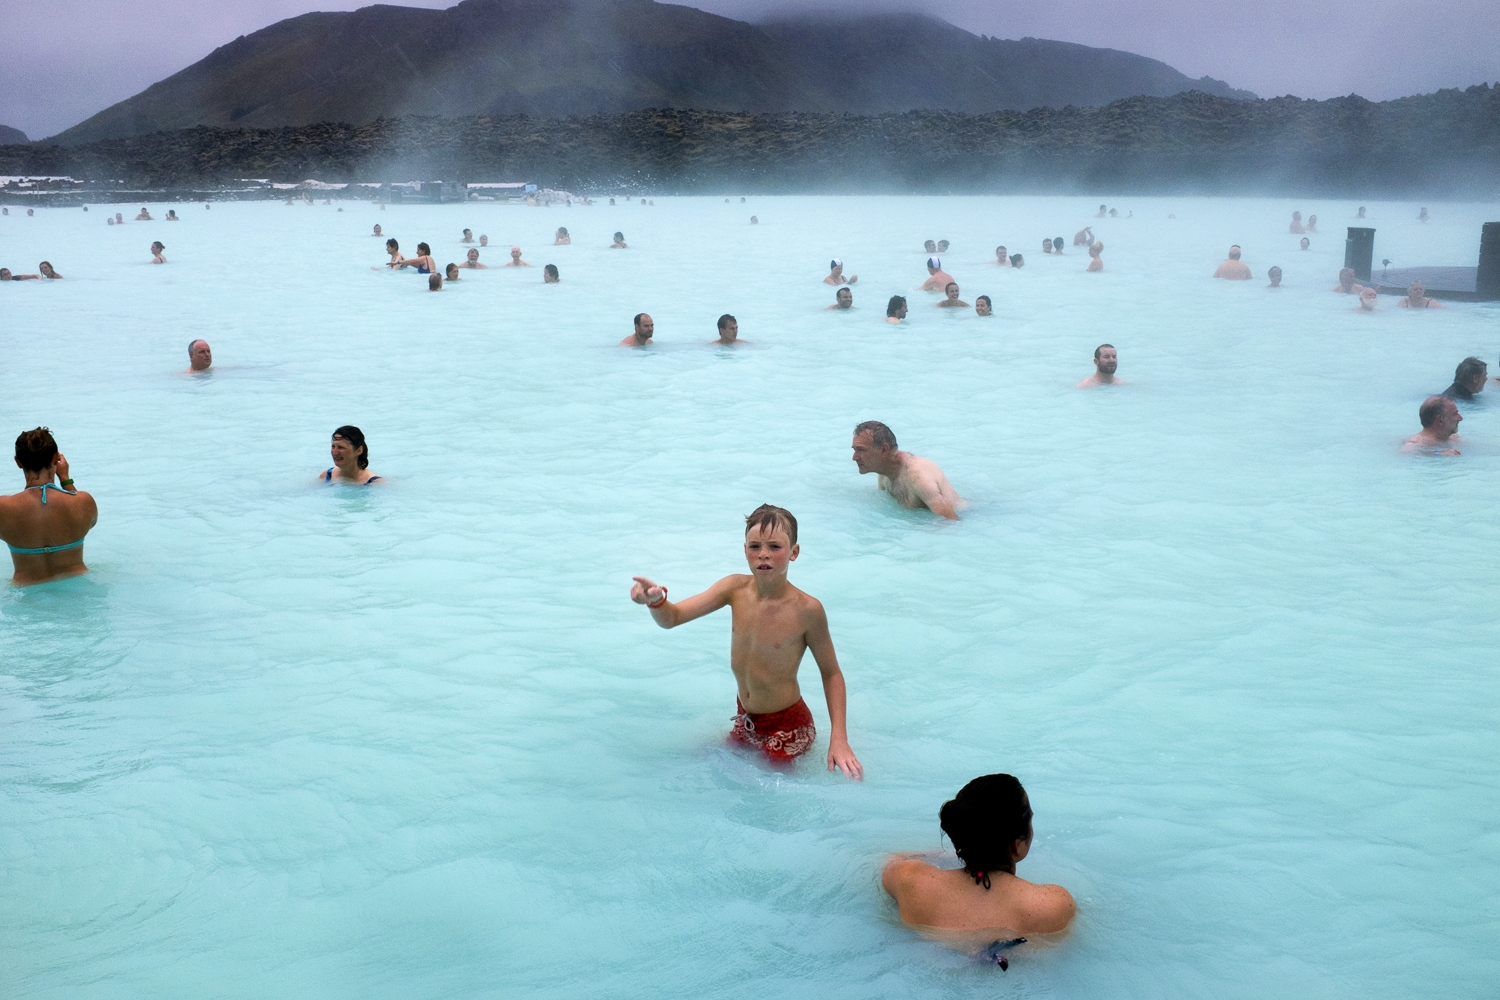 At Bláa lónið (Blue Lagoon).